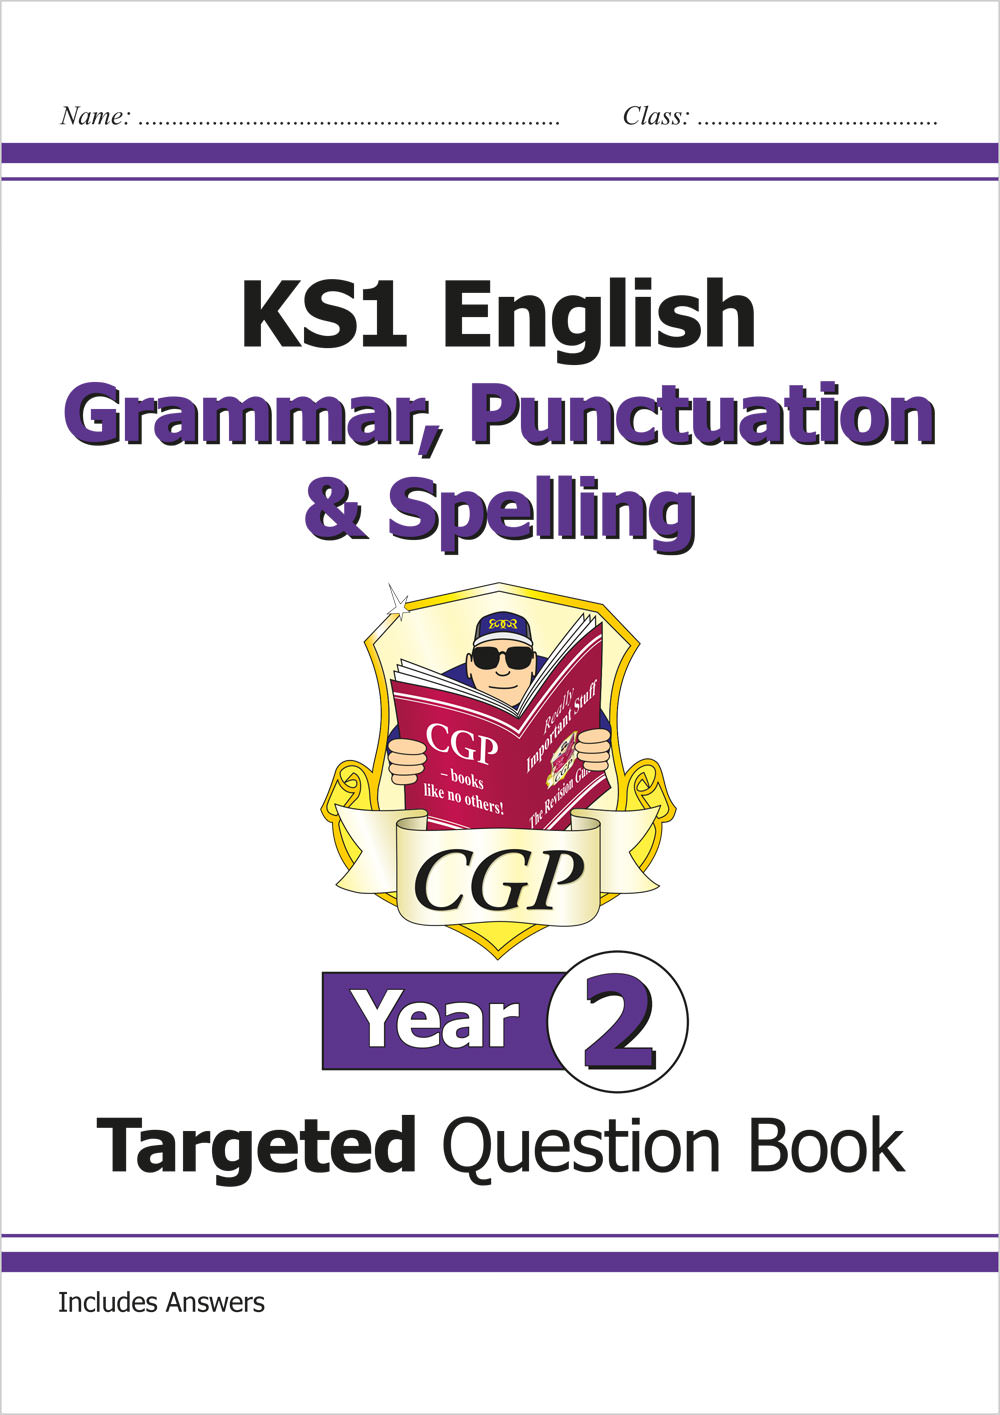 E2W11 - KS1 English Targeted Question Book: Grammar, Punctuation & Spelling - Year 2